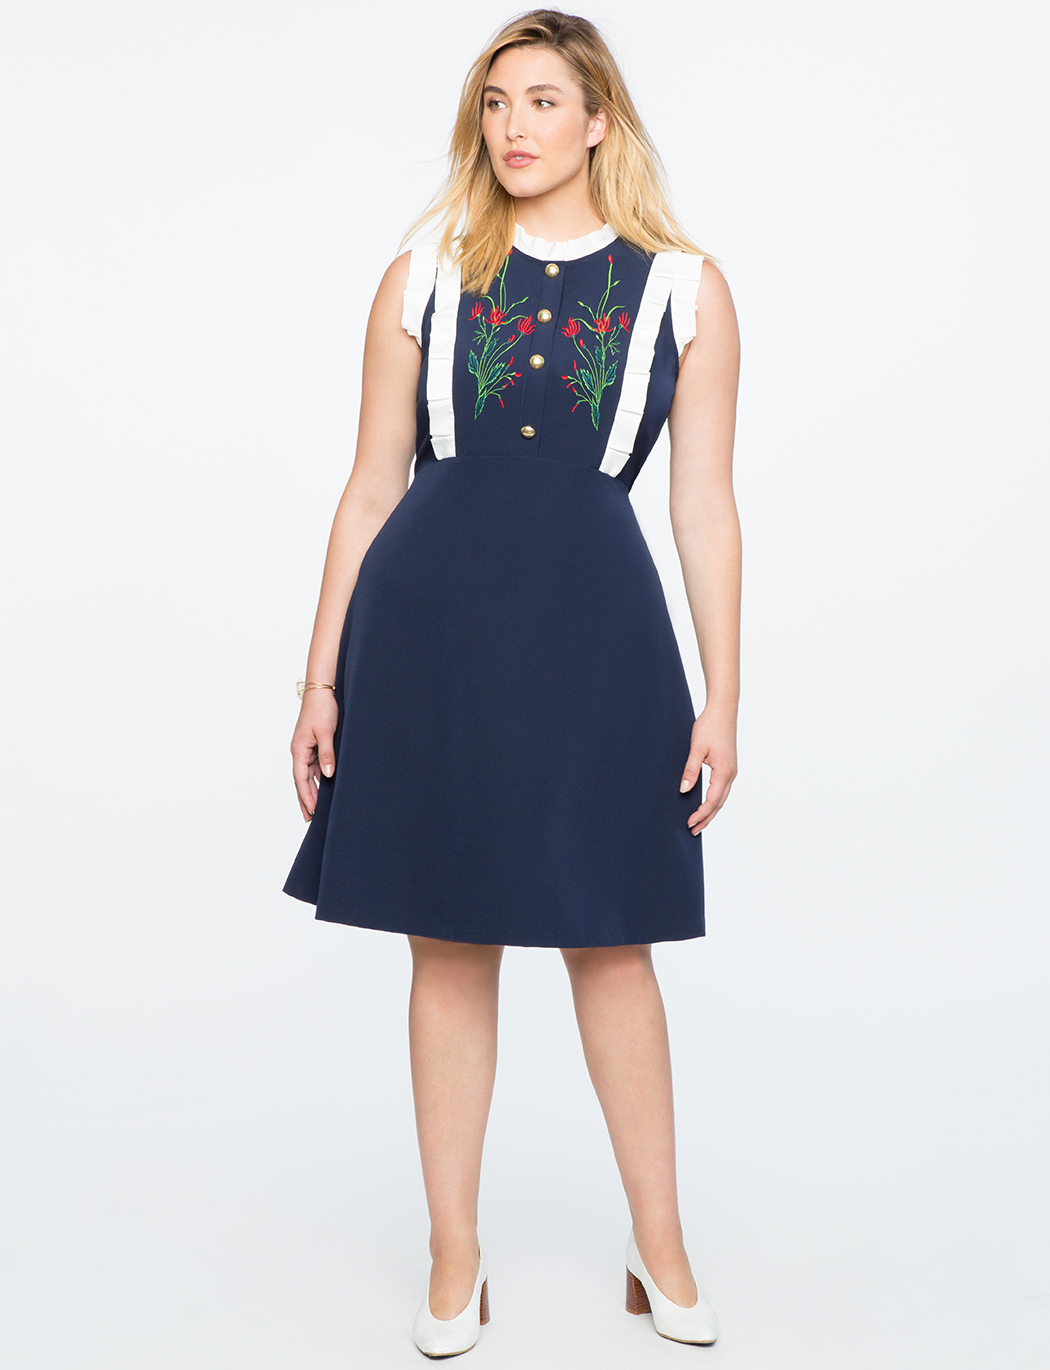 Embroidered Sleeveless A-Line Dress